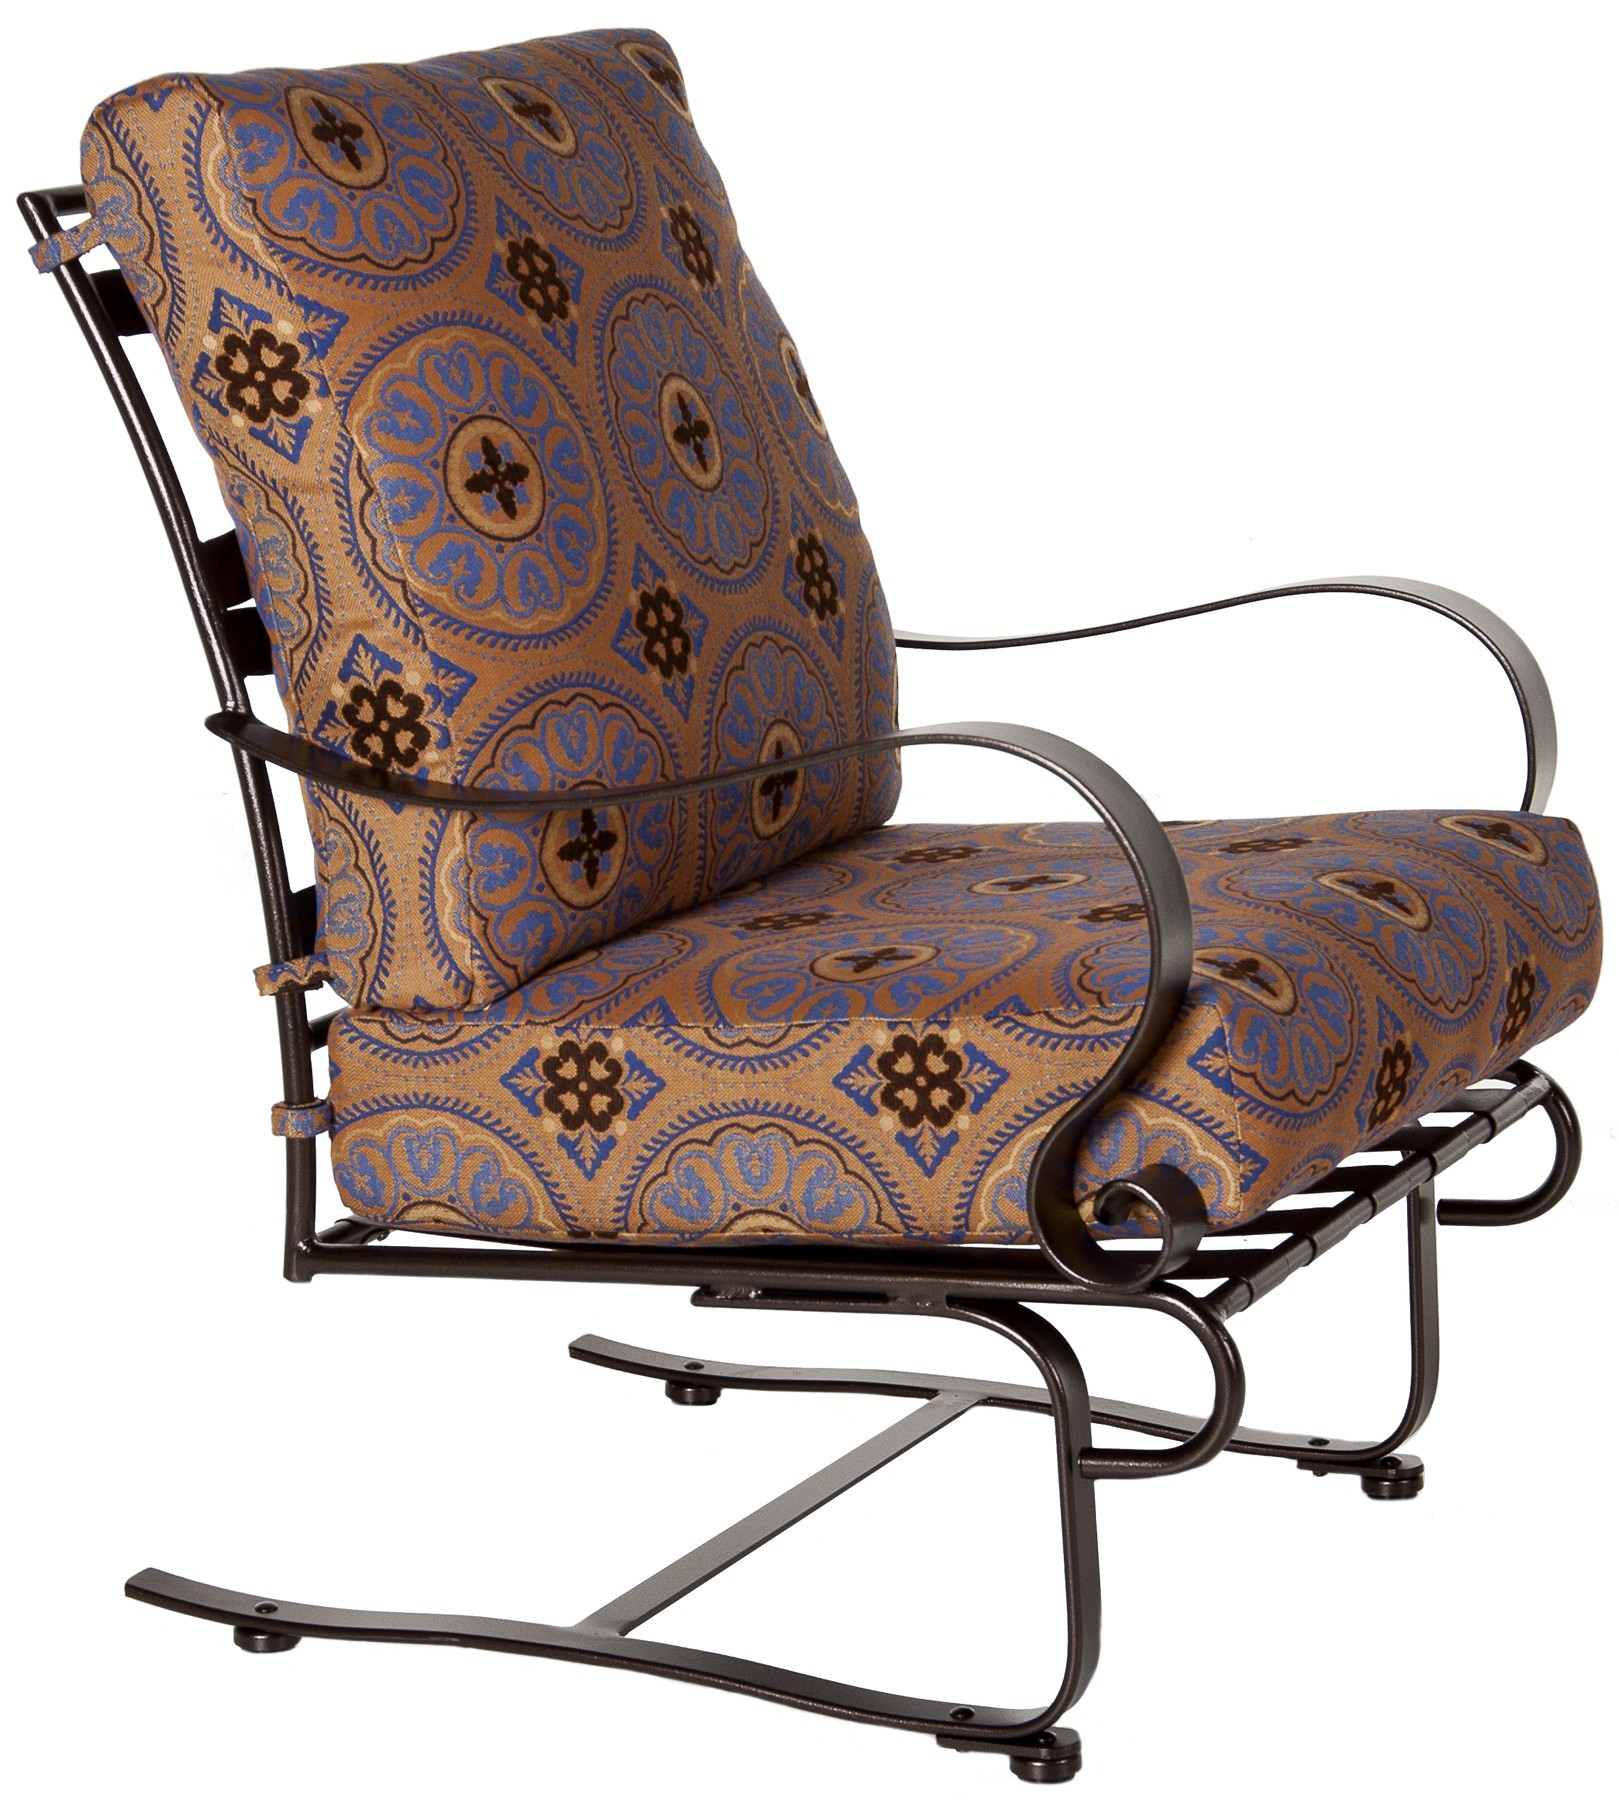 springs for chairs folding sale in bulk marquette spring base lounge chair hauser 39s patio